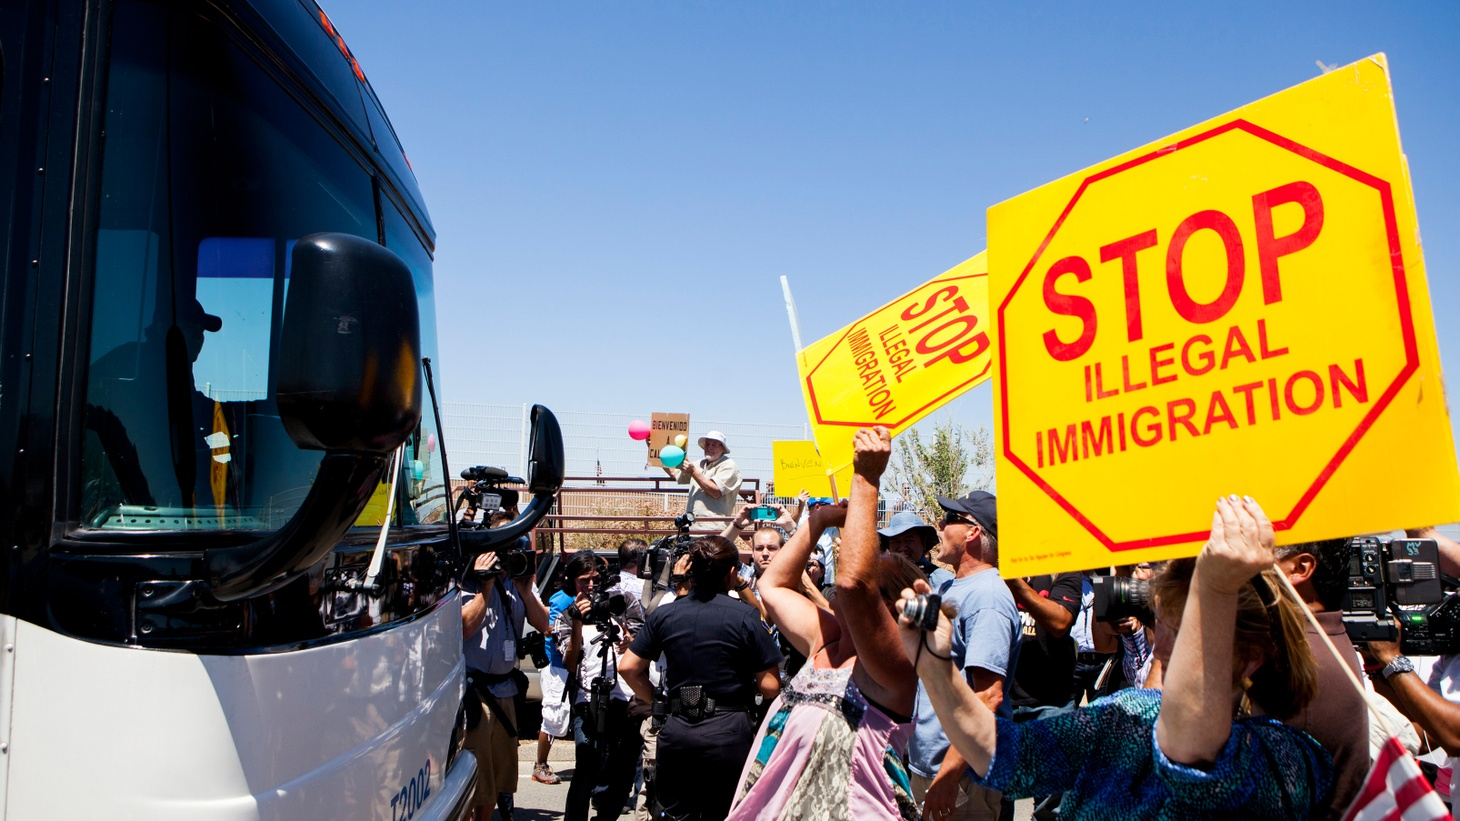 """Buses with 140 undocumented migrants blocked by protesters on their way to Murrieta. Extreme violence in Central America is pushing many people north. We also meet the men behind """"Future Folk"""", a sci-fi bluegrass band. And our tech expert introduces us to """"black phones"""", robot legs, and a computer chef."""